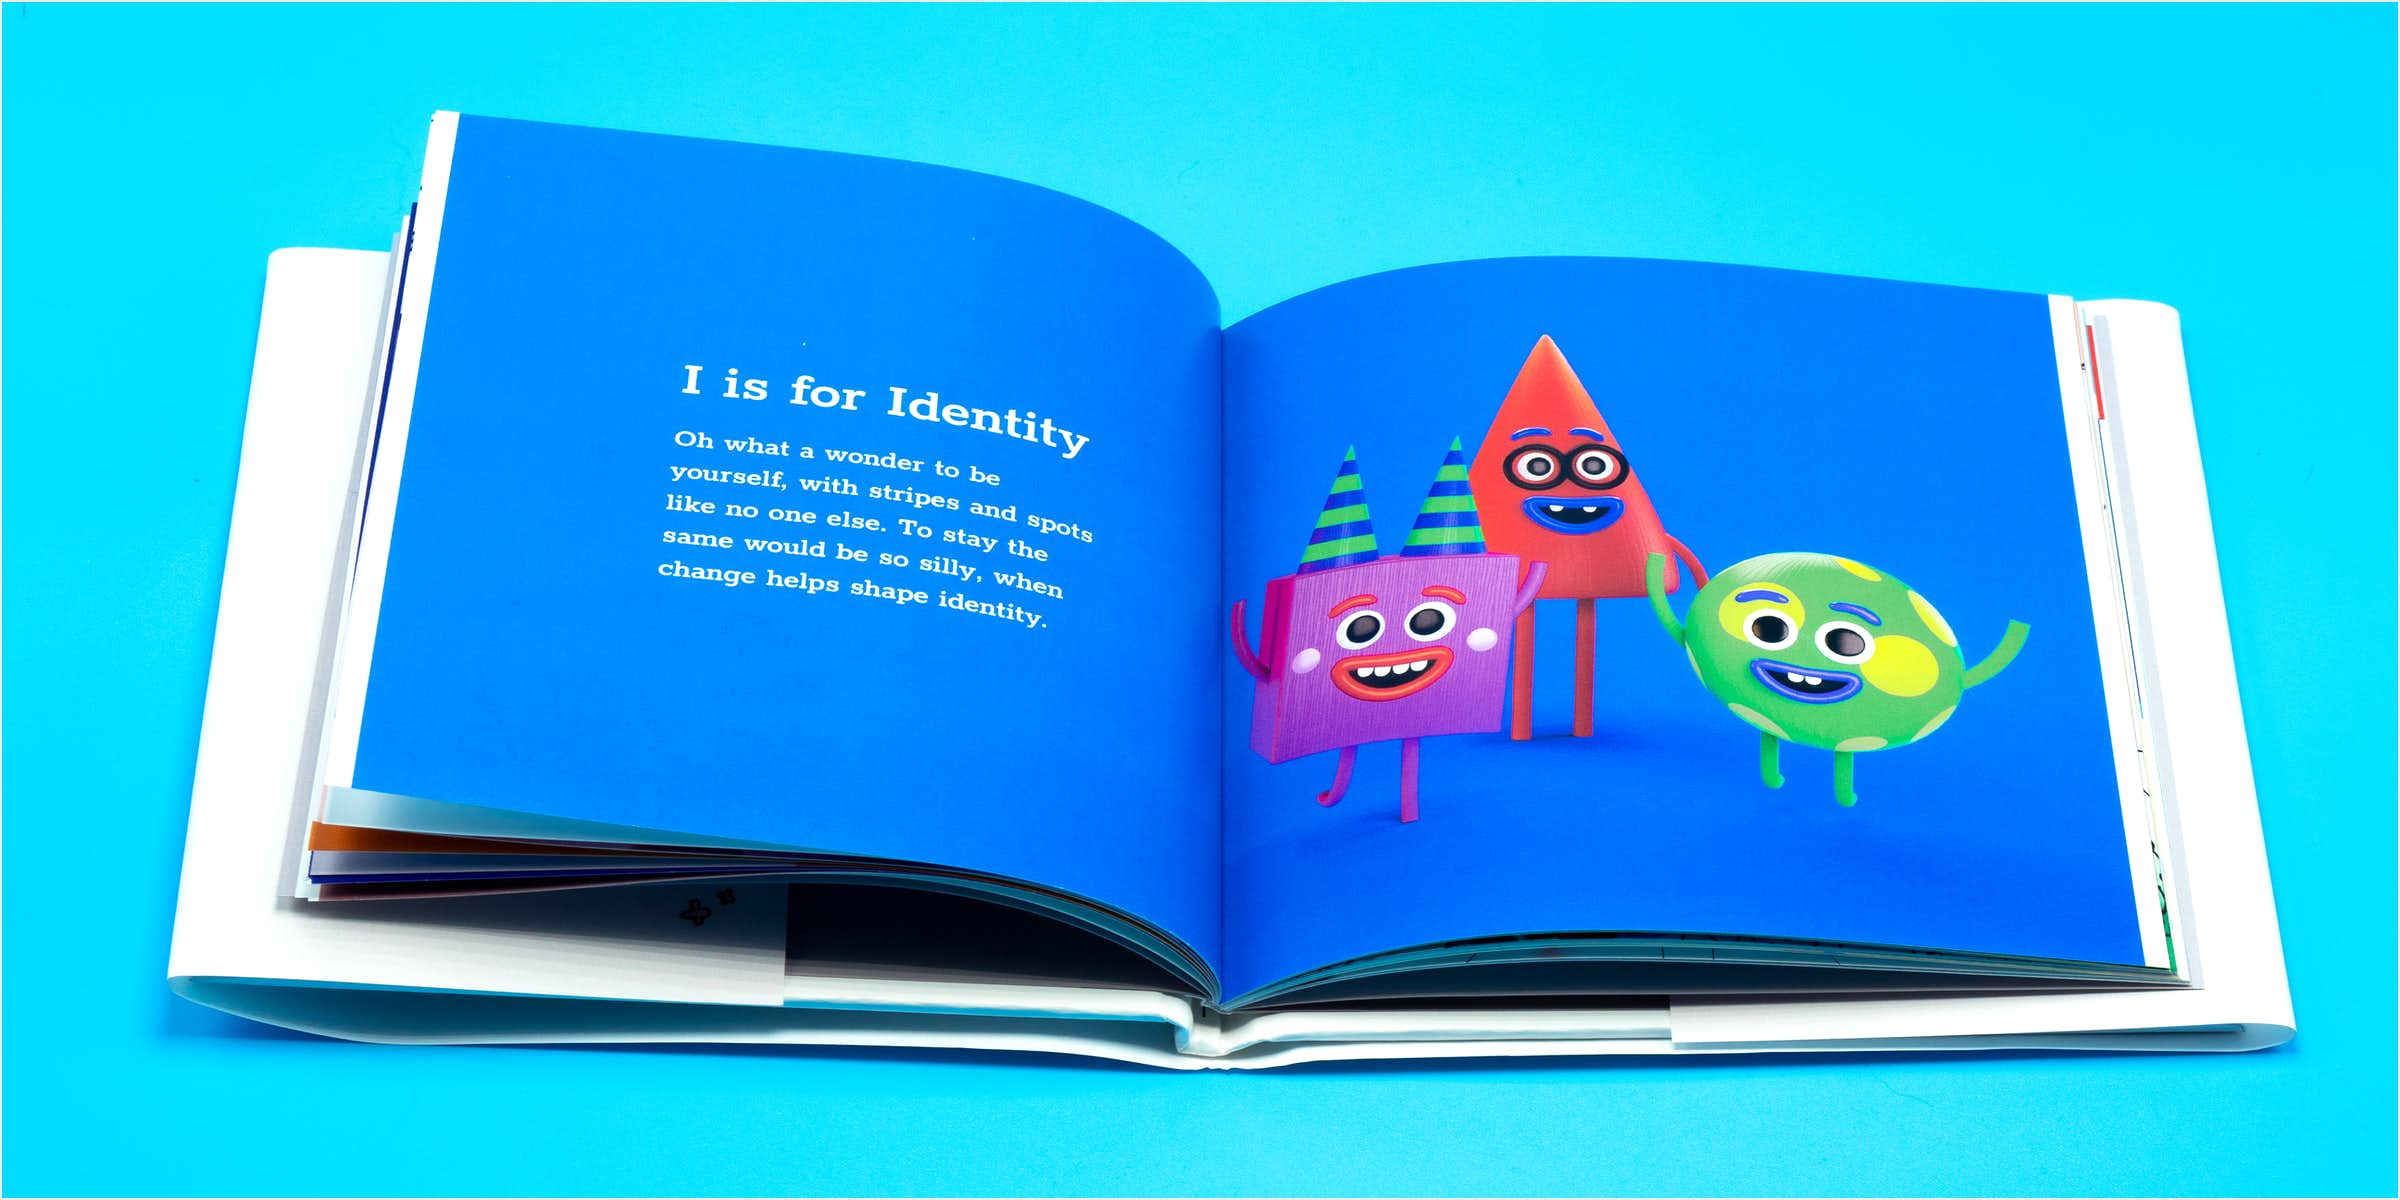 I is for Identity